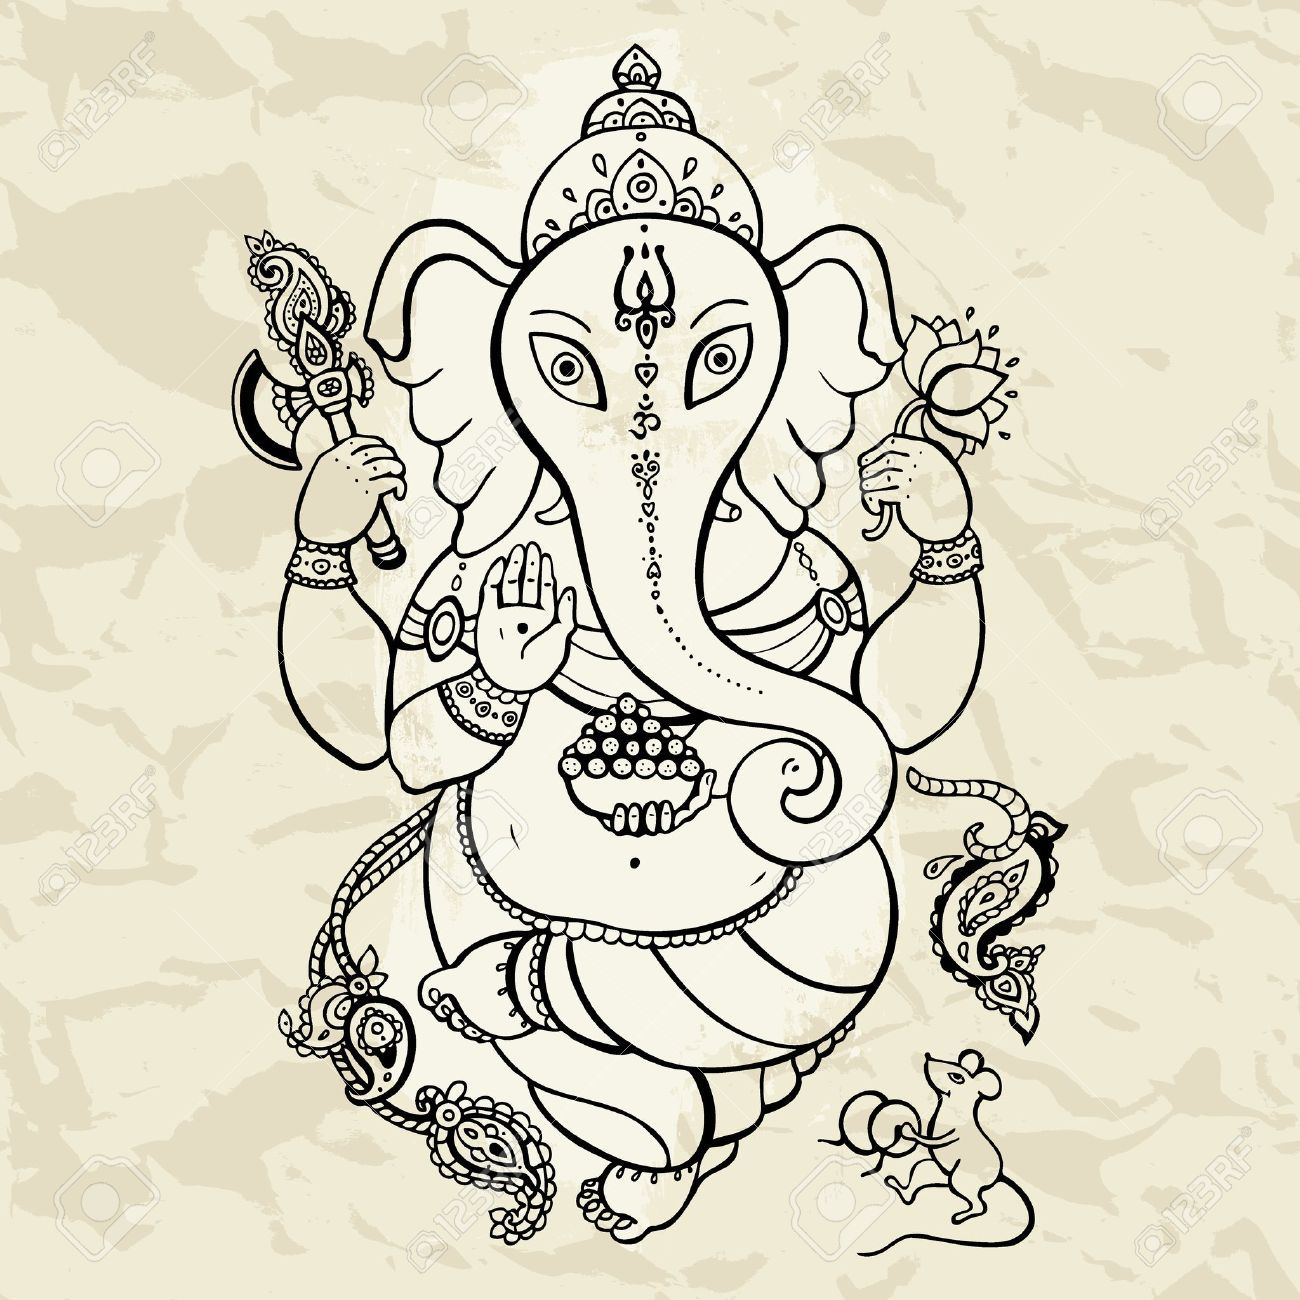 ganesh head tattoo designs - Google Search | Tattoo ideas | Pinterest